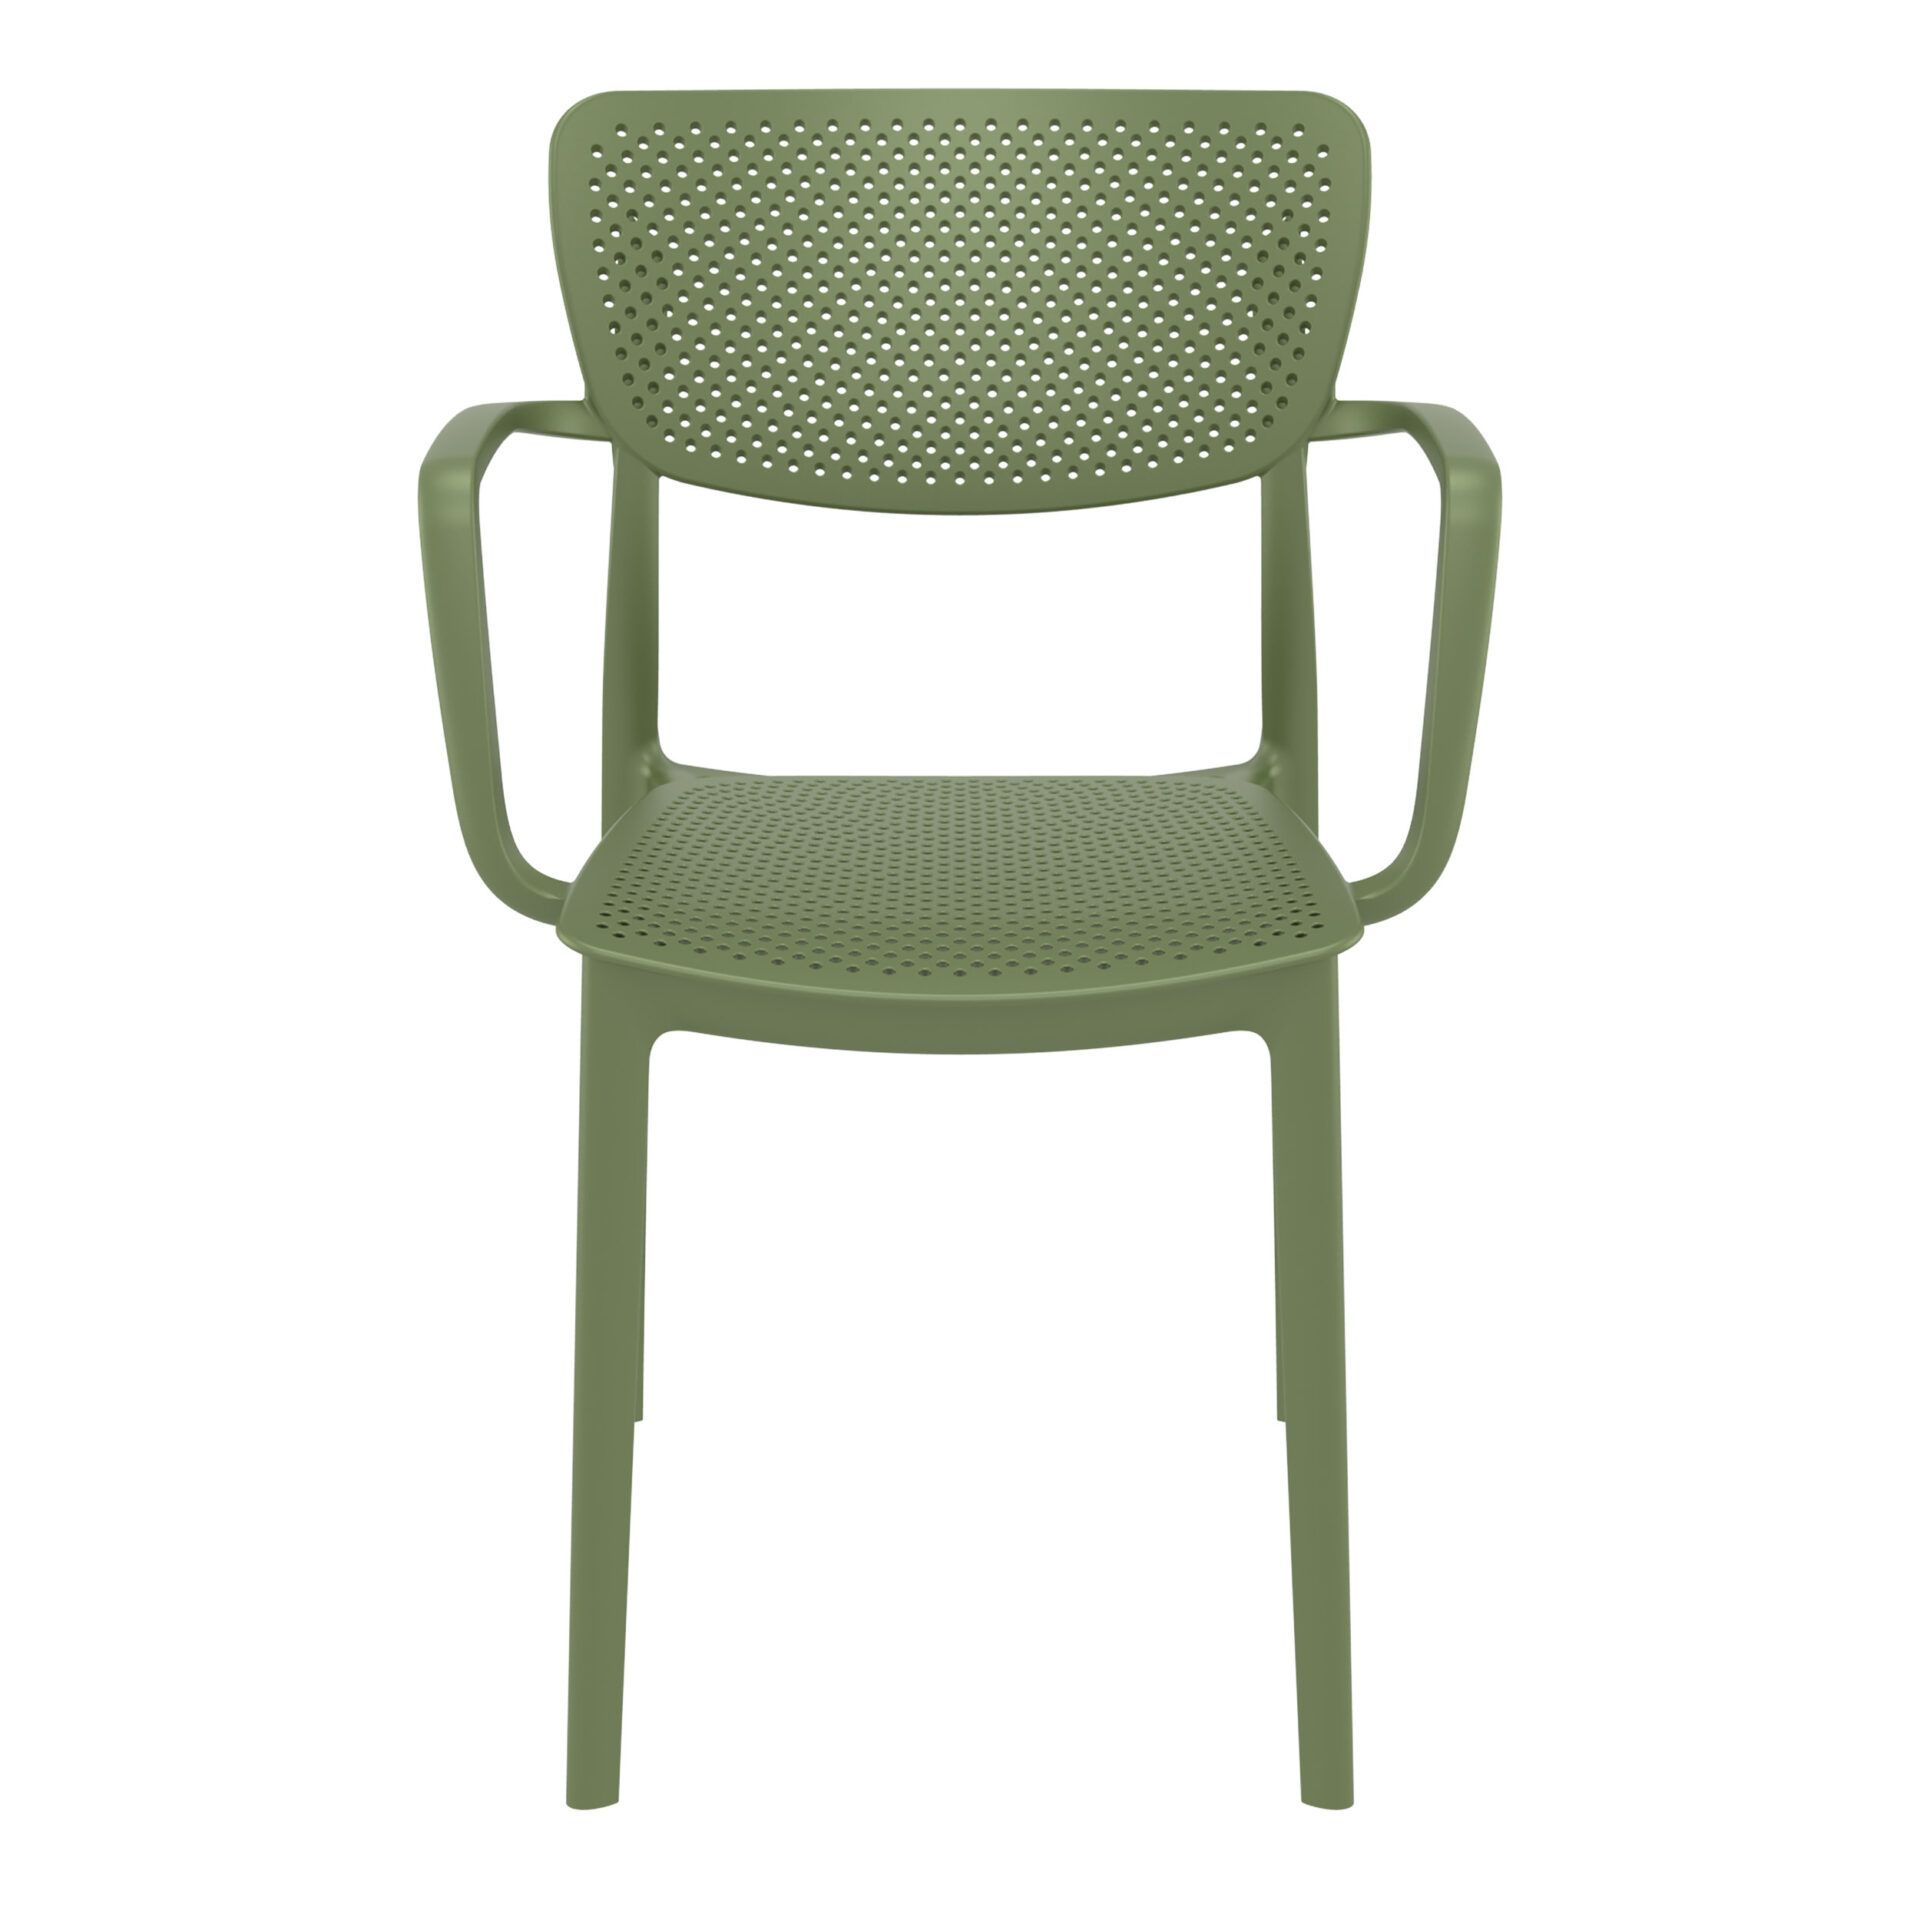 polypropylene hospitality seating loft armchair olive green front